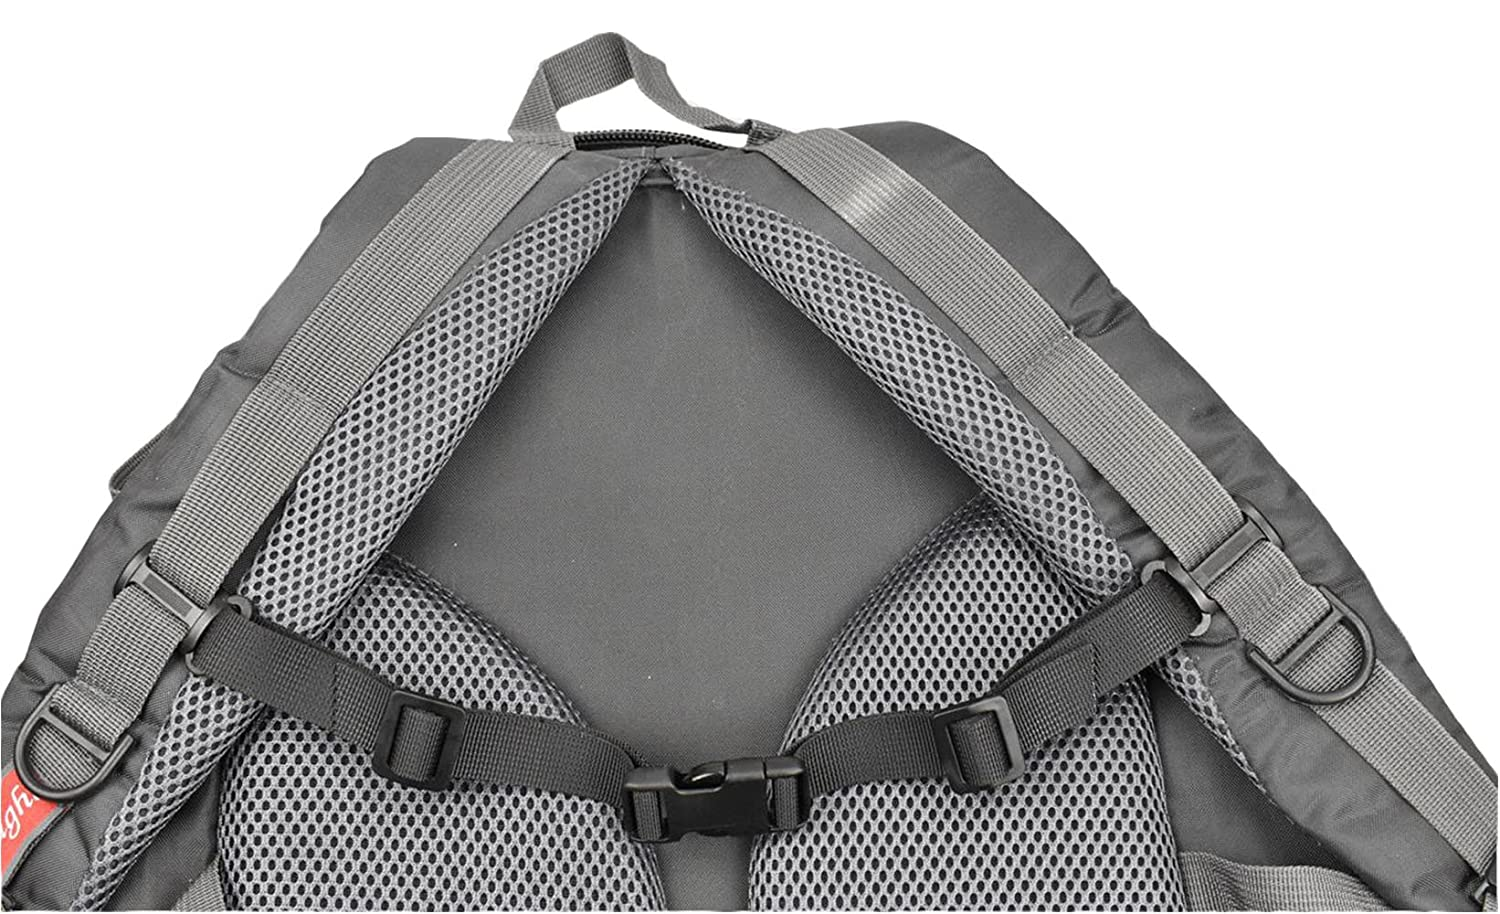 Luggage & Bags 1 Pcs High Quality Adjustable Bag Backpack Chest Harness Strap Practical Webbing Sternum Buckle Bag Parts Accessories Online Shop